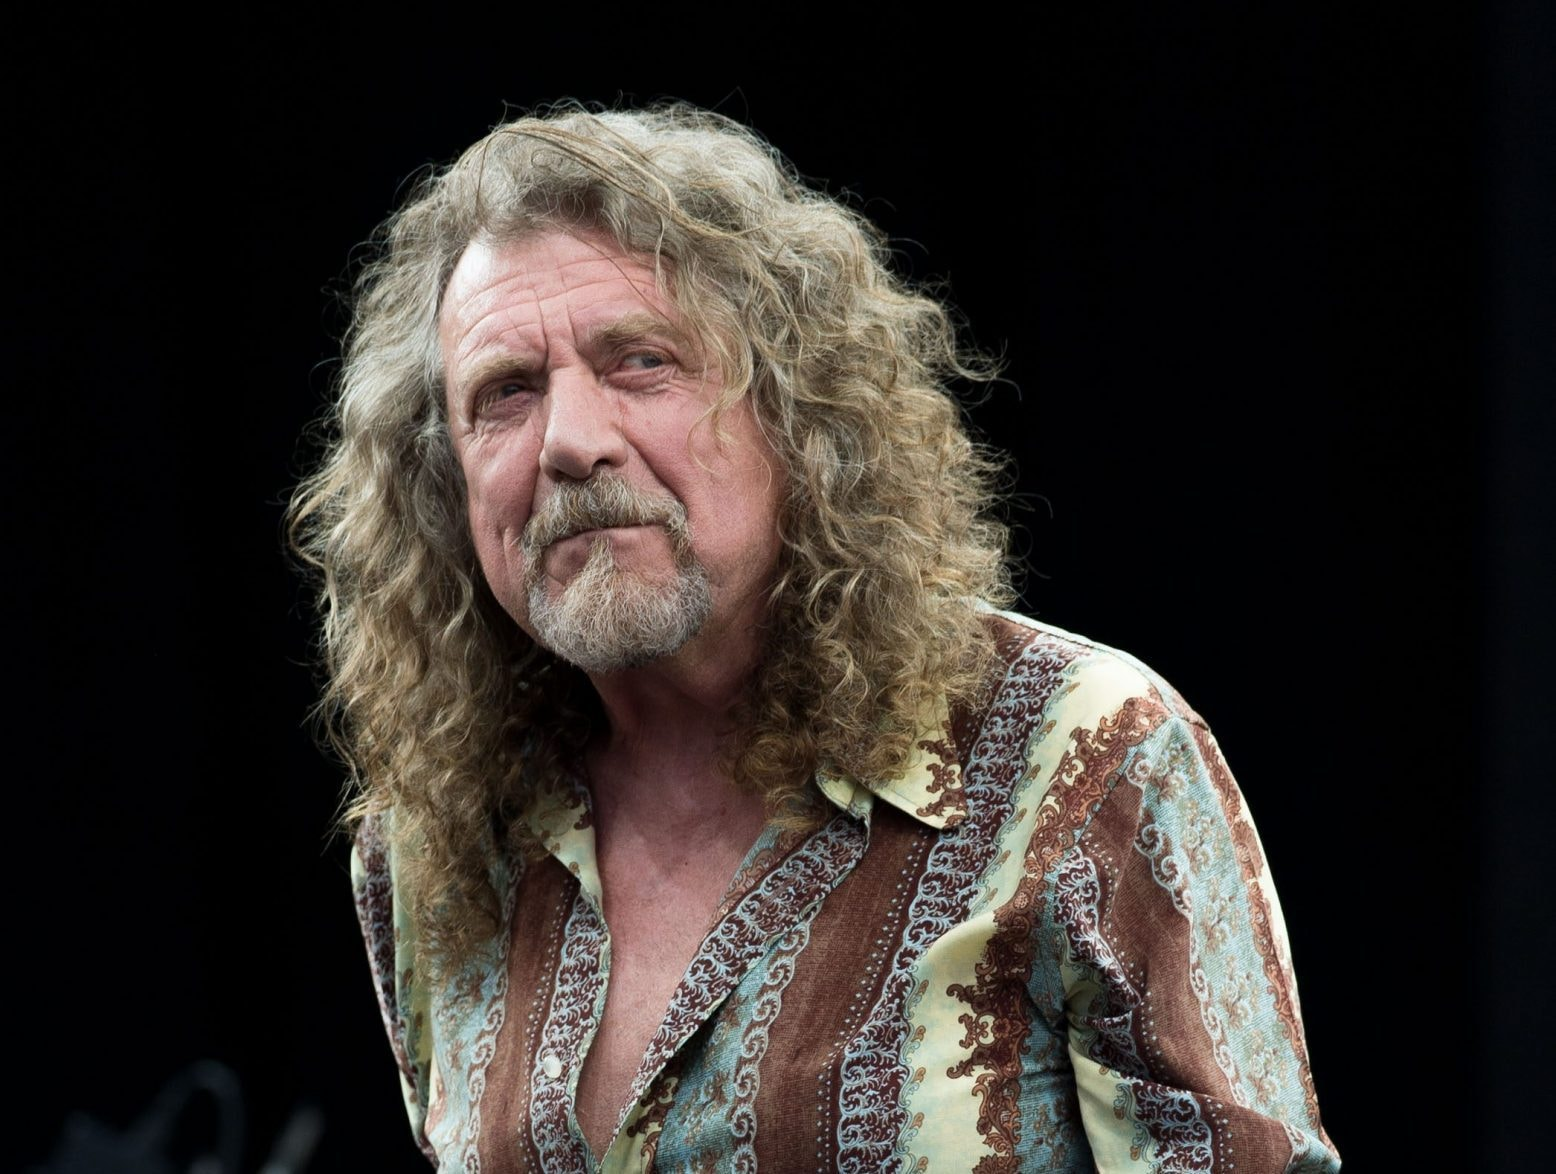 Robert Plant Photos From His Legendary Career